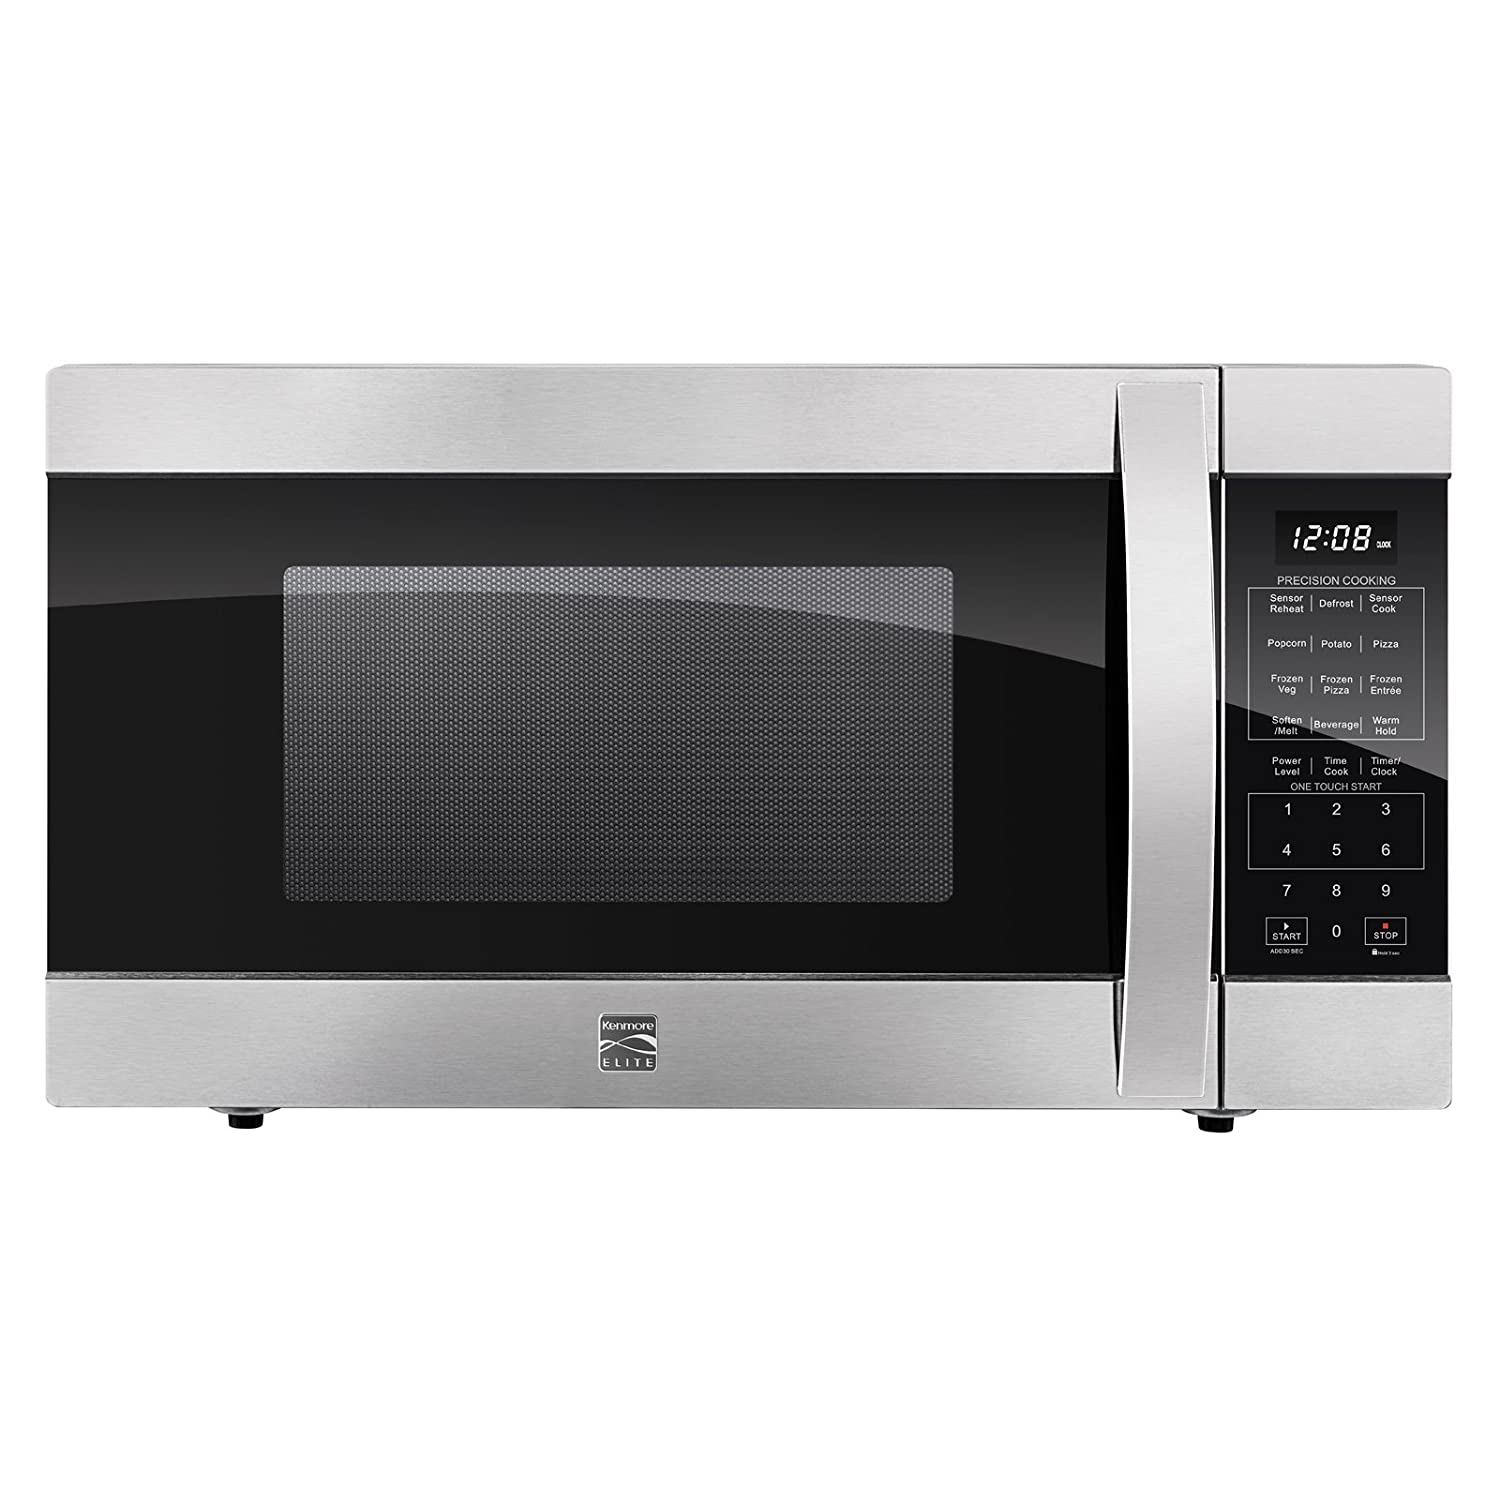 Kenmore Elite 79393 2.2 Cubic Foot Counter Top Microwave Oven in Stainless Steel